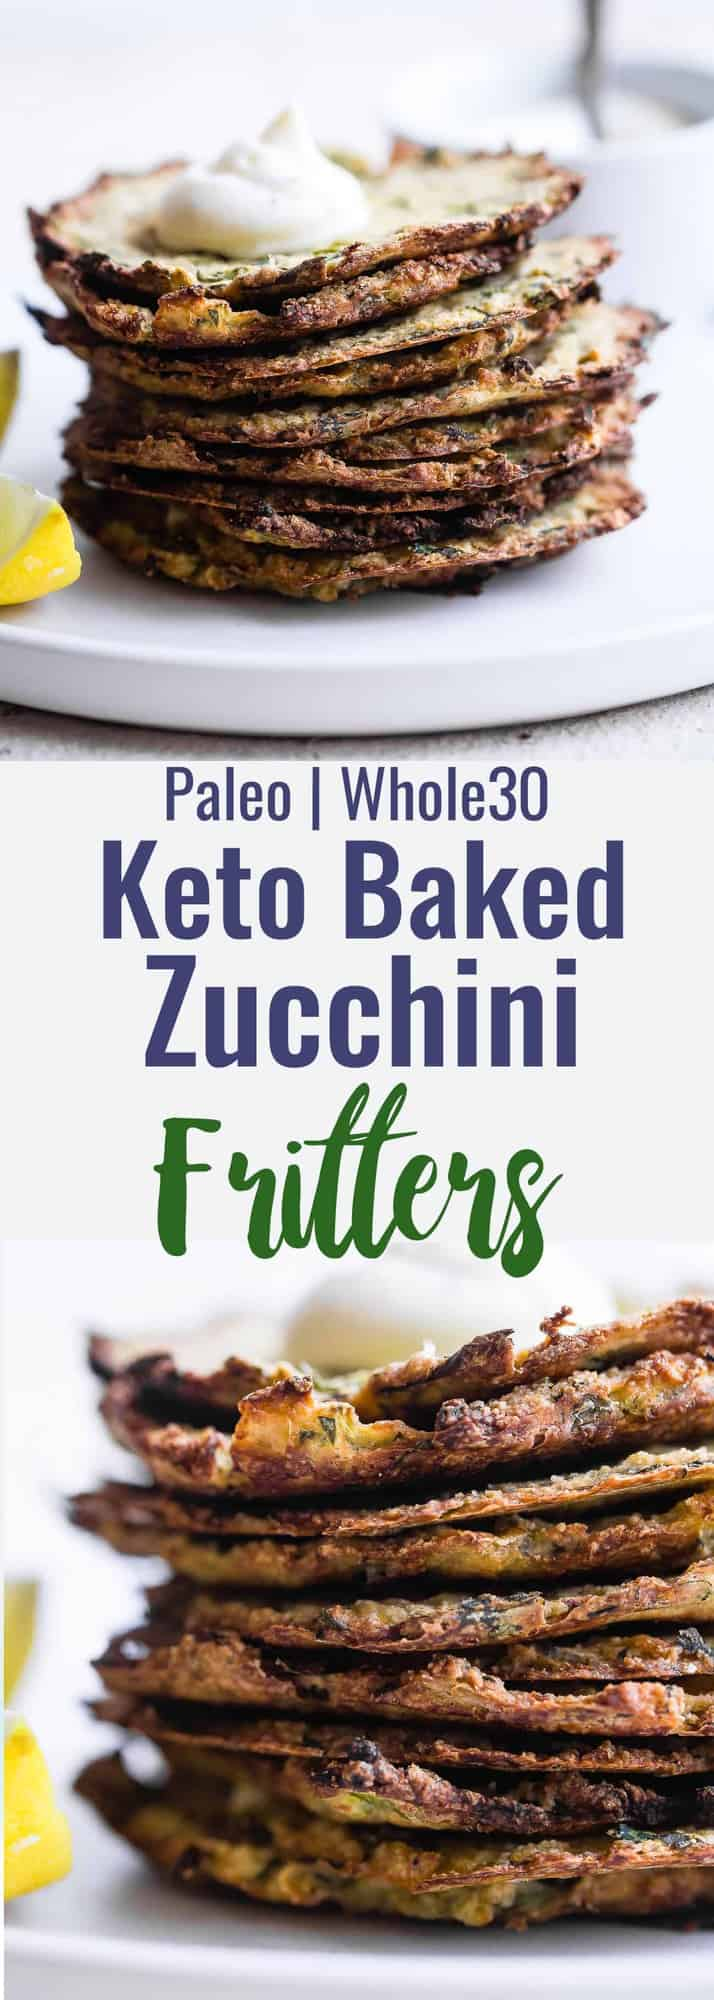 Paleo Baked Zucchini Fritters - These EAS, keto Baked Zucchini Fritters are served with an addicting lemon dill drop and are SO crispy, you'll never believe they're baked not fried! Gluten free, low carb, whole30 and insanely tasty! | #Foodfaithfitness | #Glutenfree #keto #Paleo #Whole30 #Lowcarb